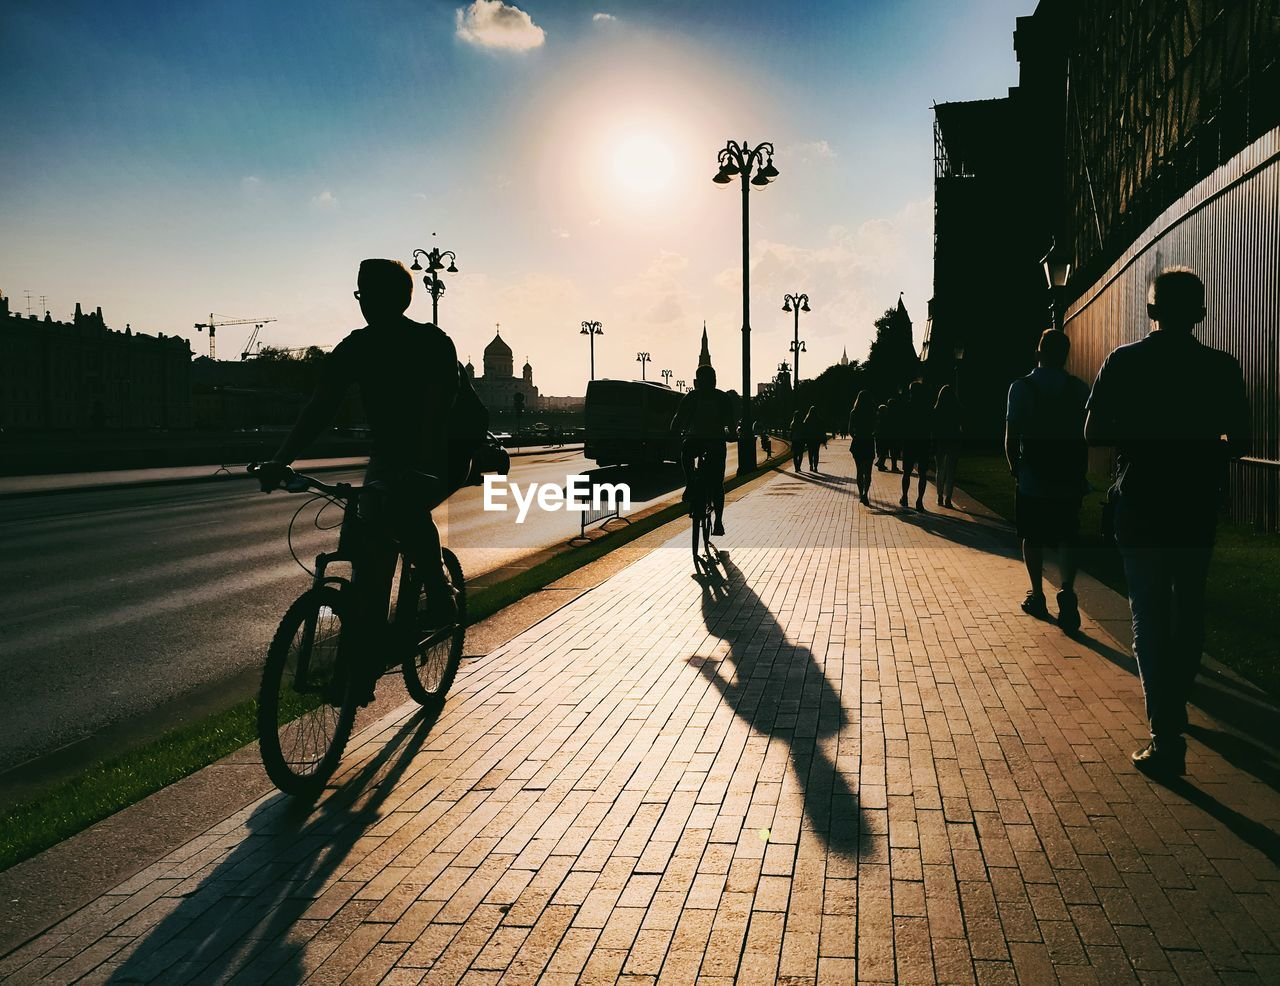 city, street, bicycle, sky, transportation, sunset, real people, sunlight, men, group of people, silhouette, shadow, lifestyles, nature, people, road, domestic, pets, footpath, architecture, riding, outdoors, sun